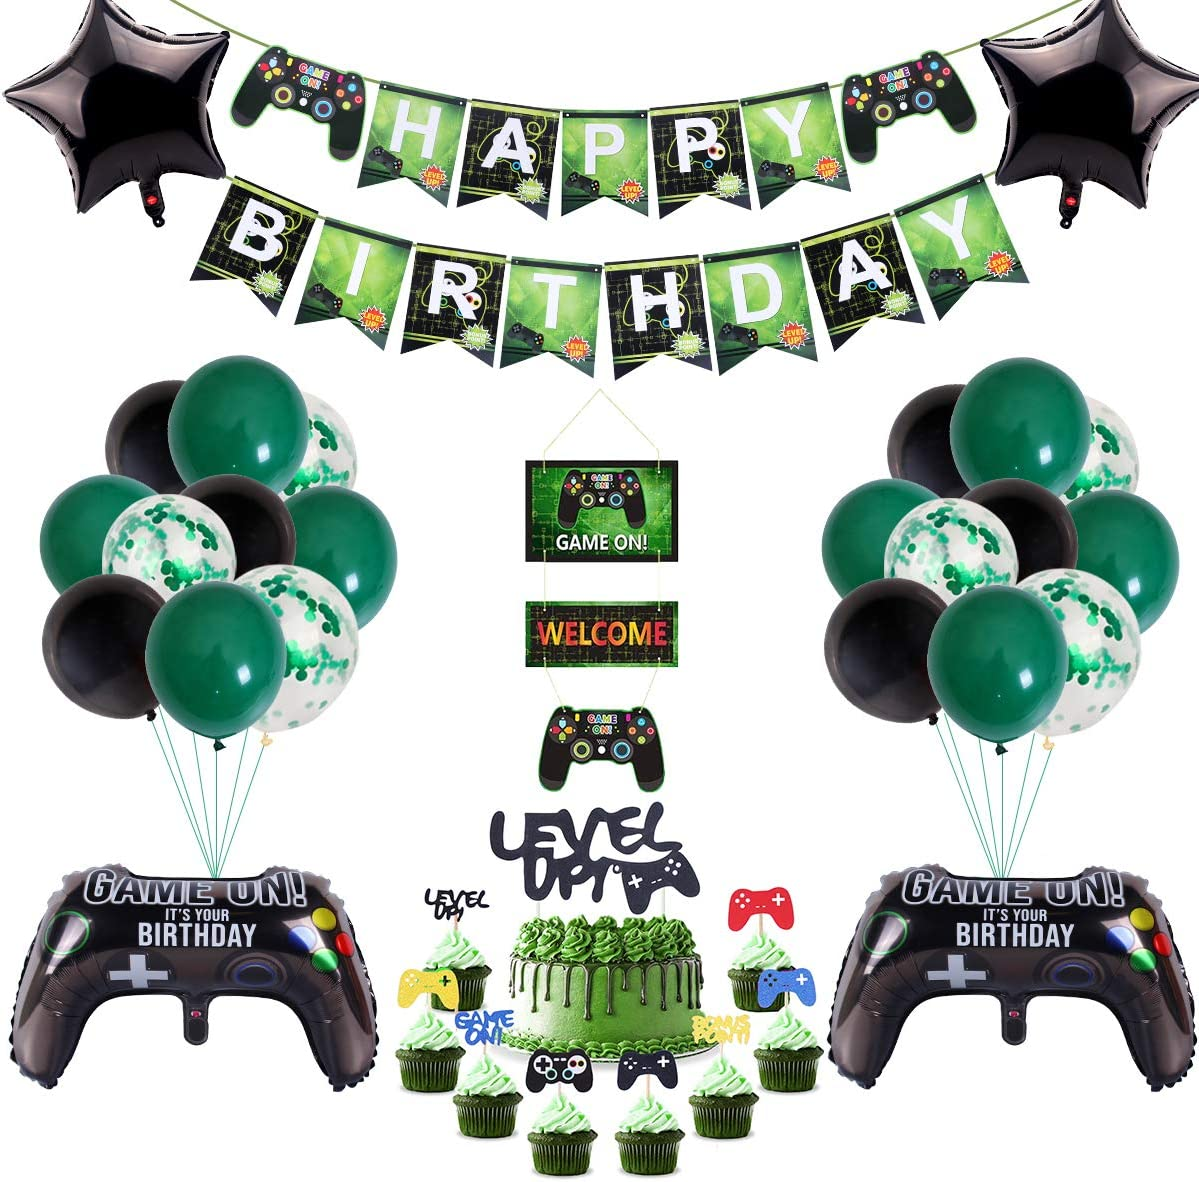 51 Pcs Video Game Party Supplies,Video Game Party Balloons Game Controller Balloons HAPPY BIRTHDAY Gaming Banner GAME ON Welcome Hanging Decor and Game Themed Cupcake Topper for Boys Birthday Party